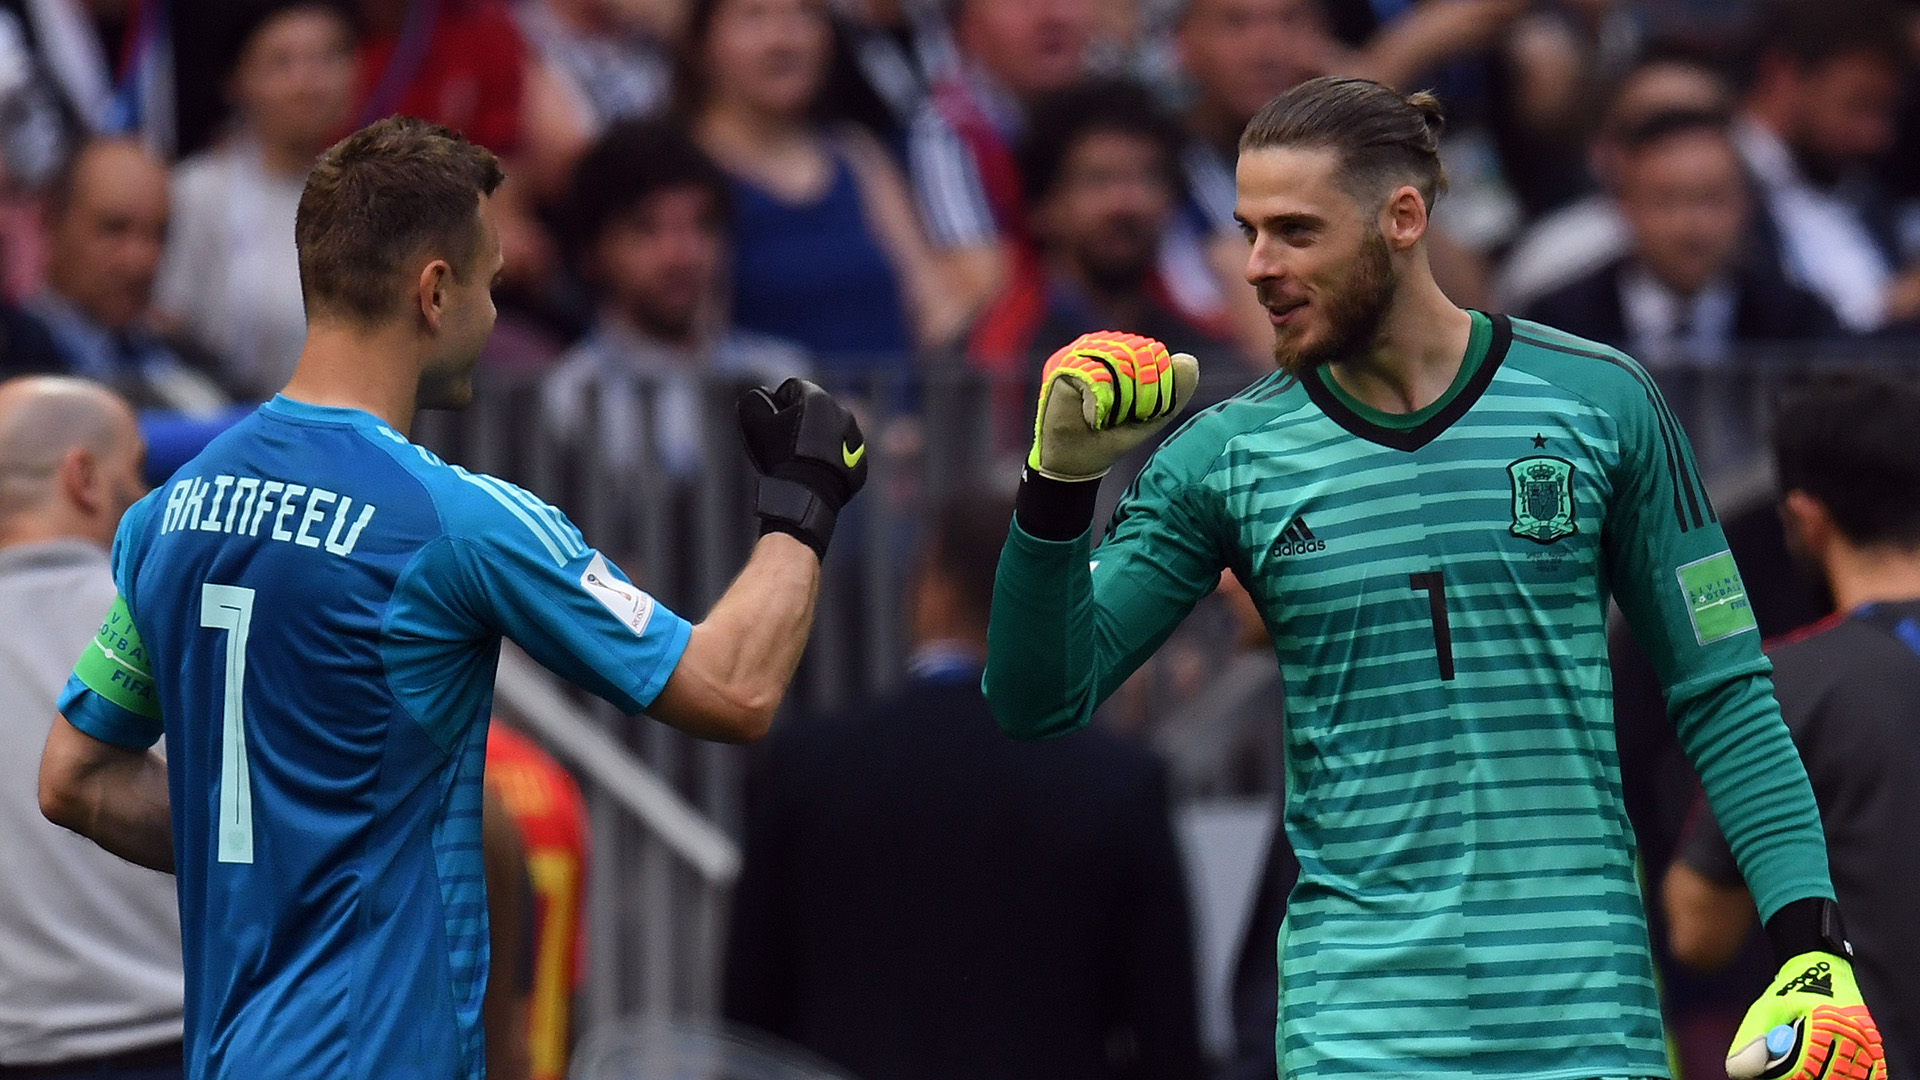 Igor Akinfeev David de Gea Russia Spain World Cup 2018 010718